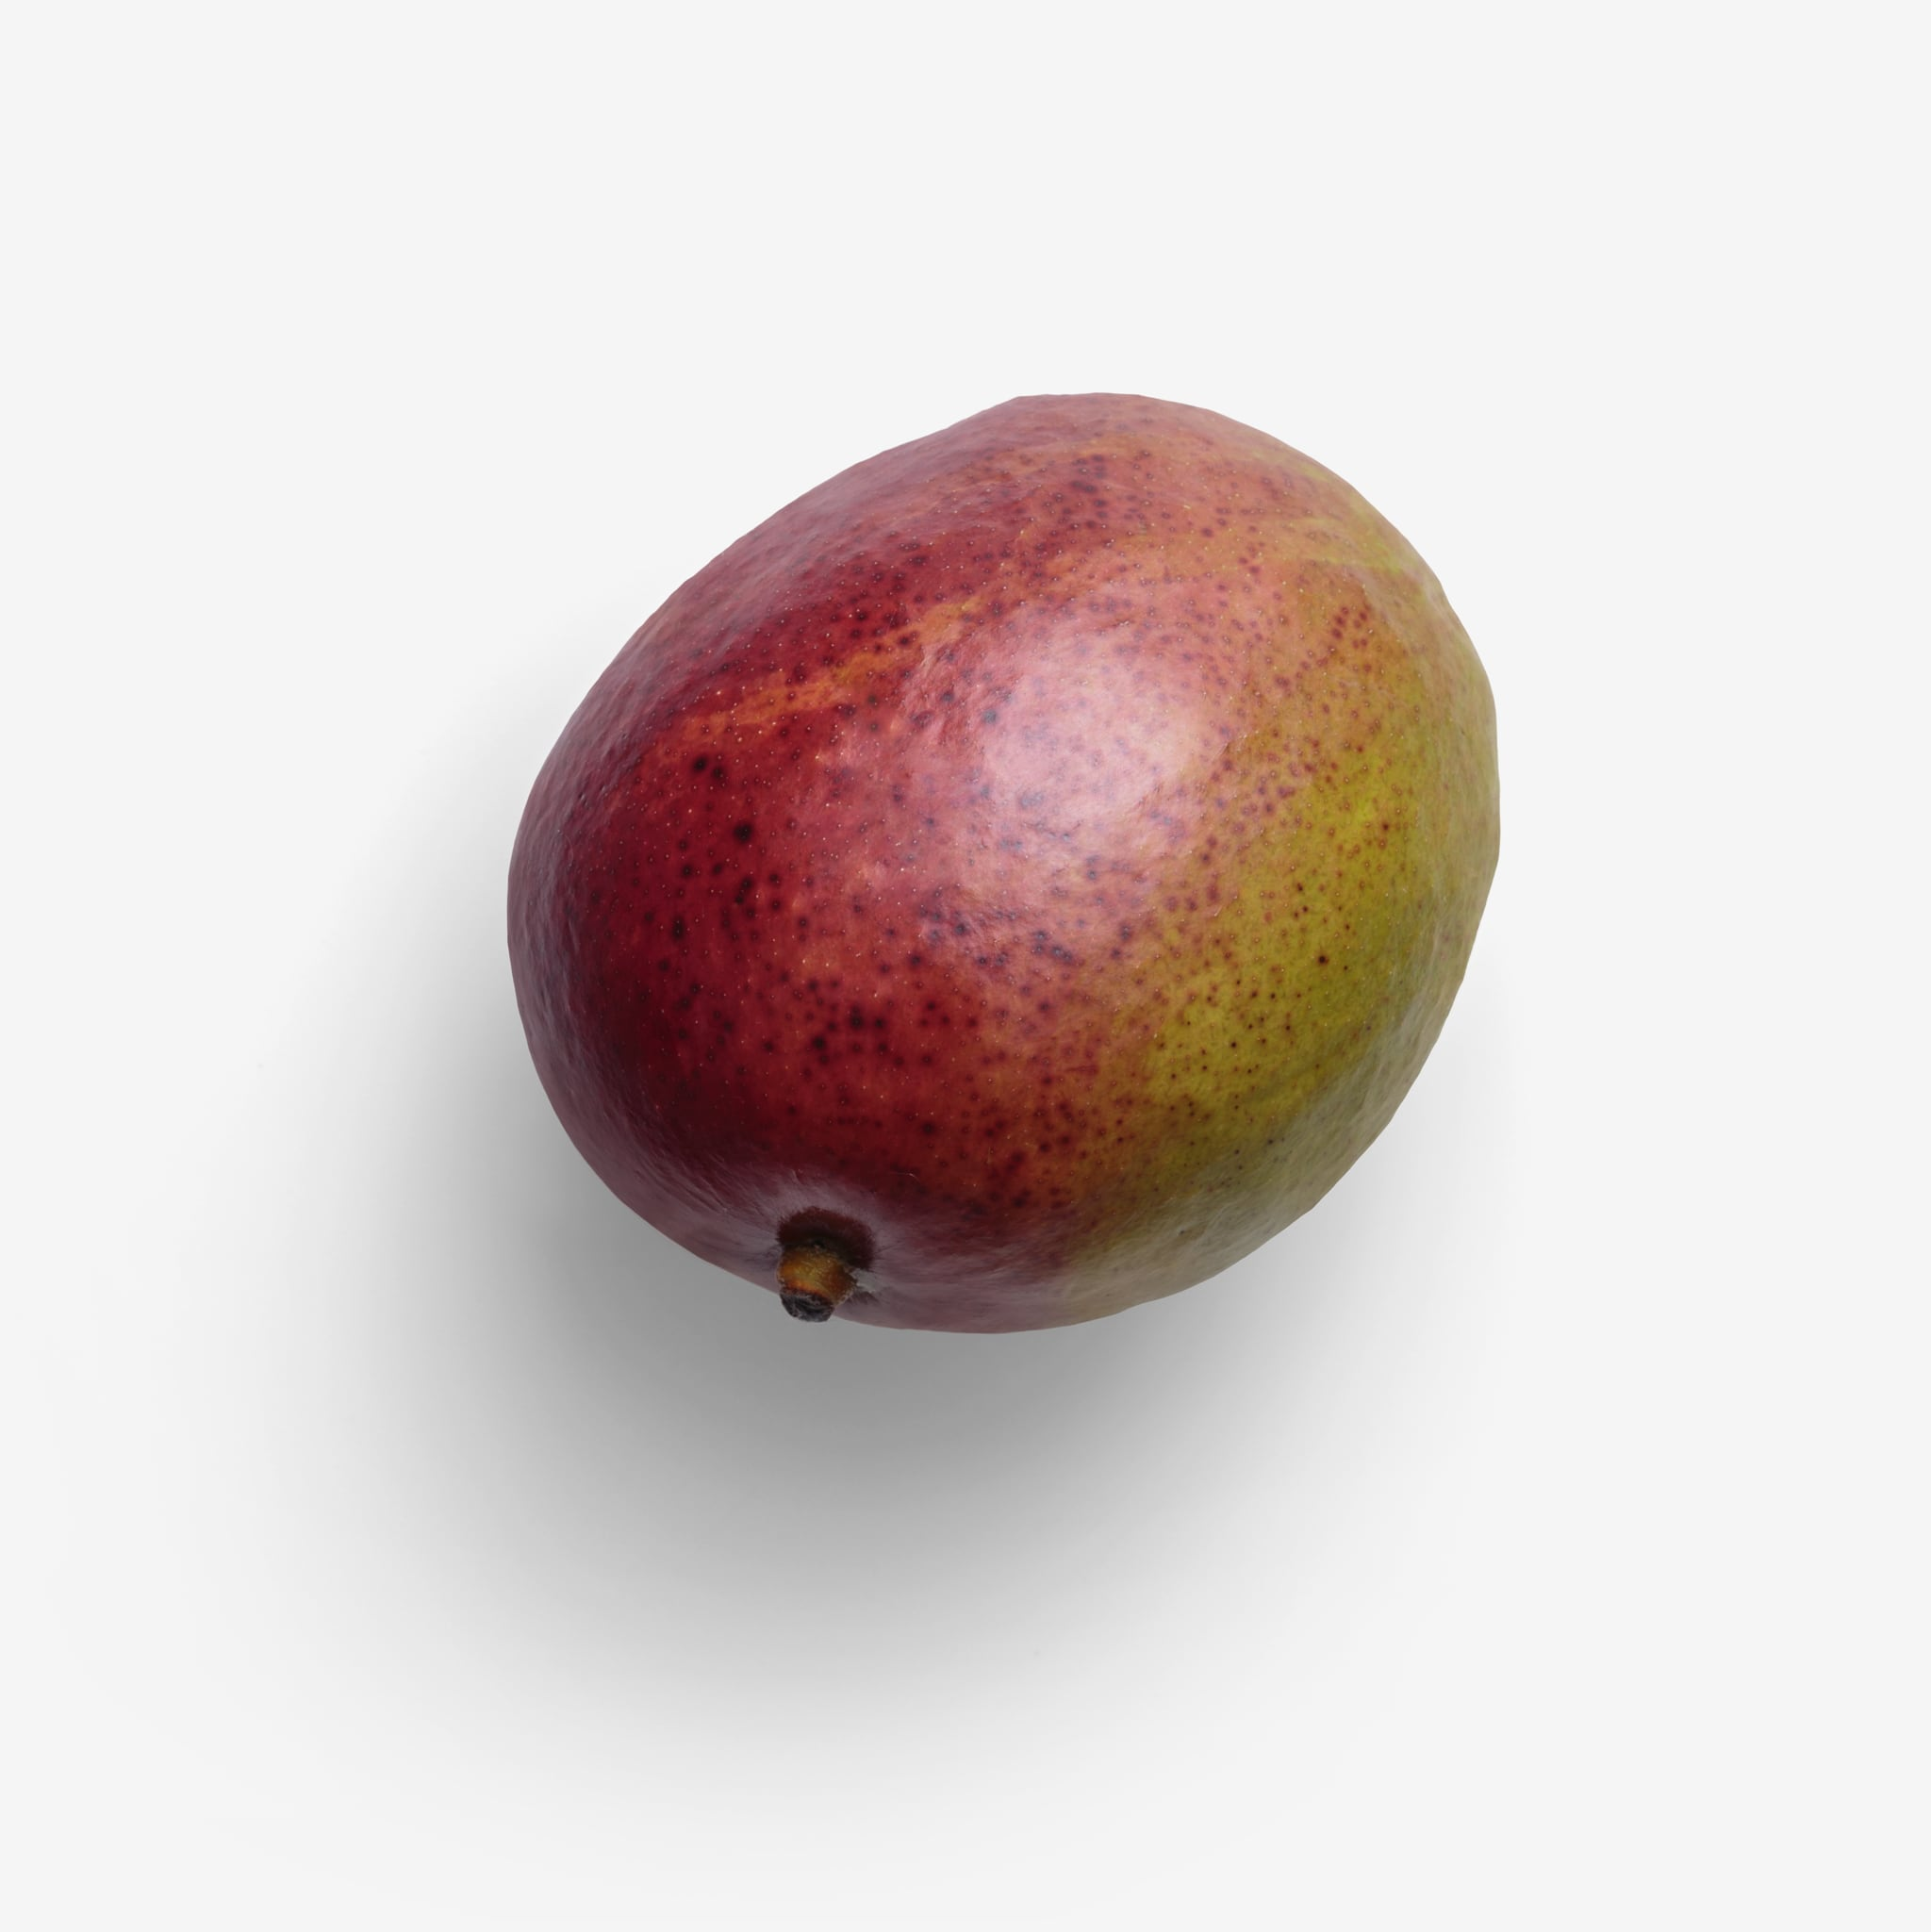 Mango image with transparent background